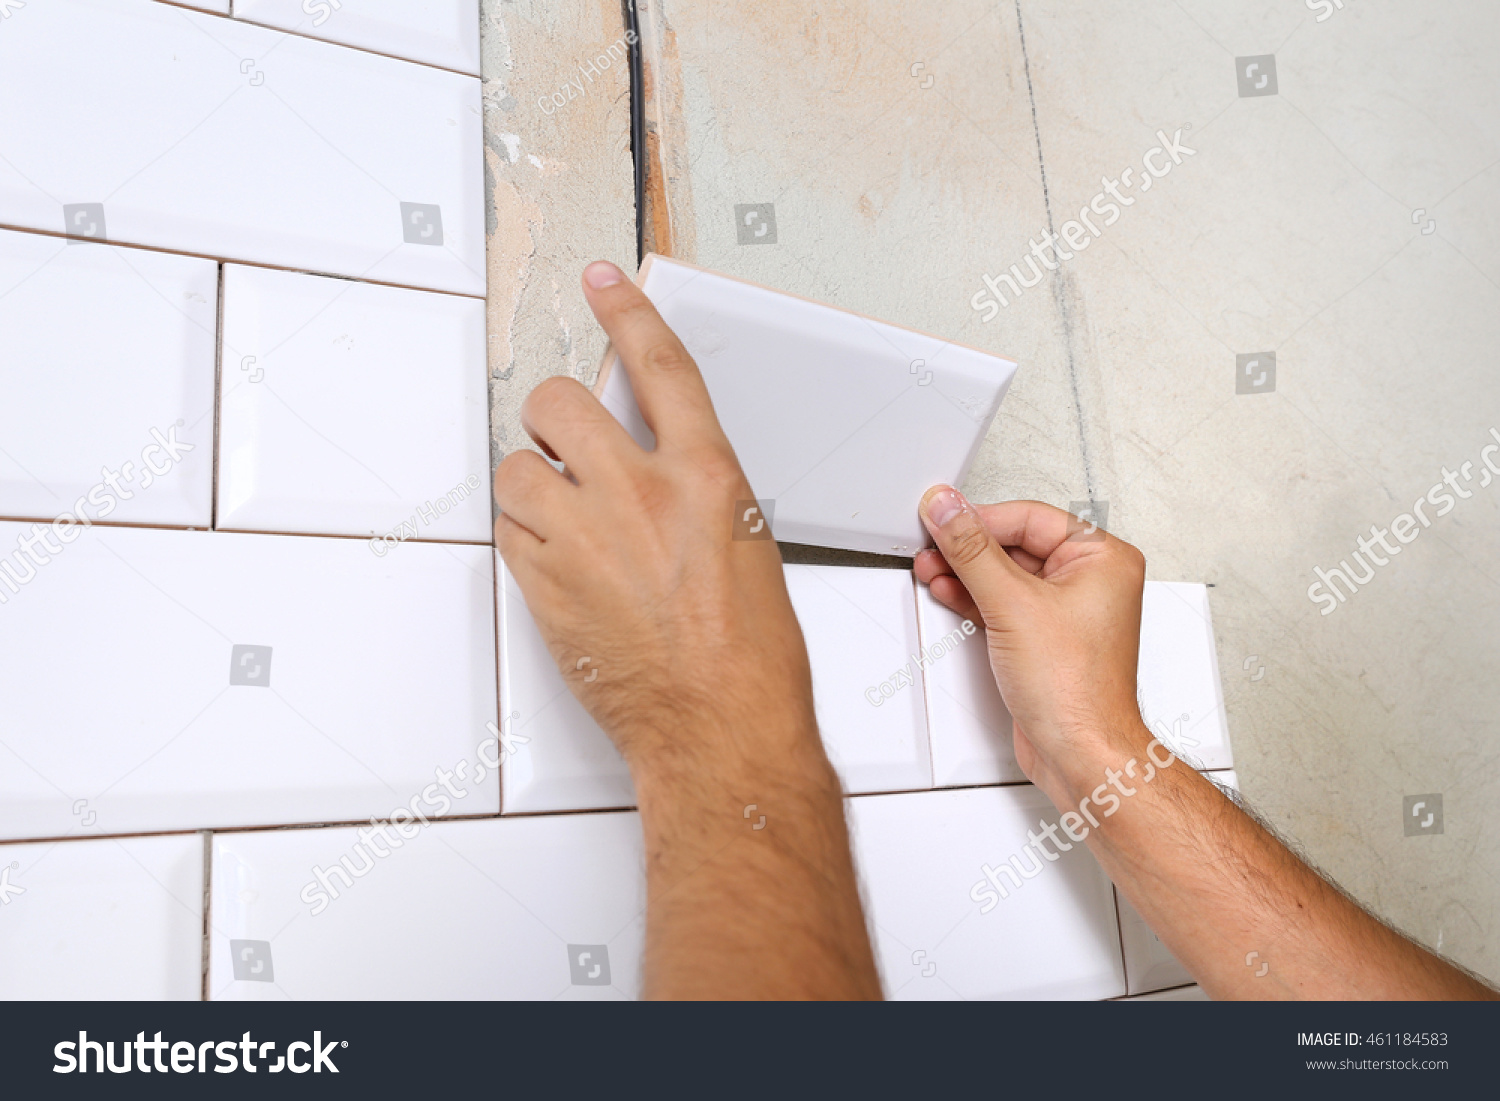 Rectangular white ceramic tile chamfer on stock photo 461184583 rectangular white ceramic tile with a chamfer on the kitchen wall tiler hands in the dailygadgetfo Images